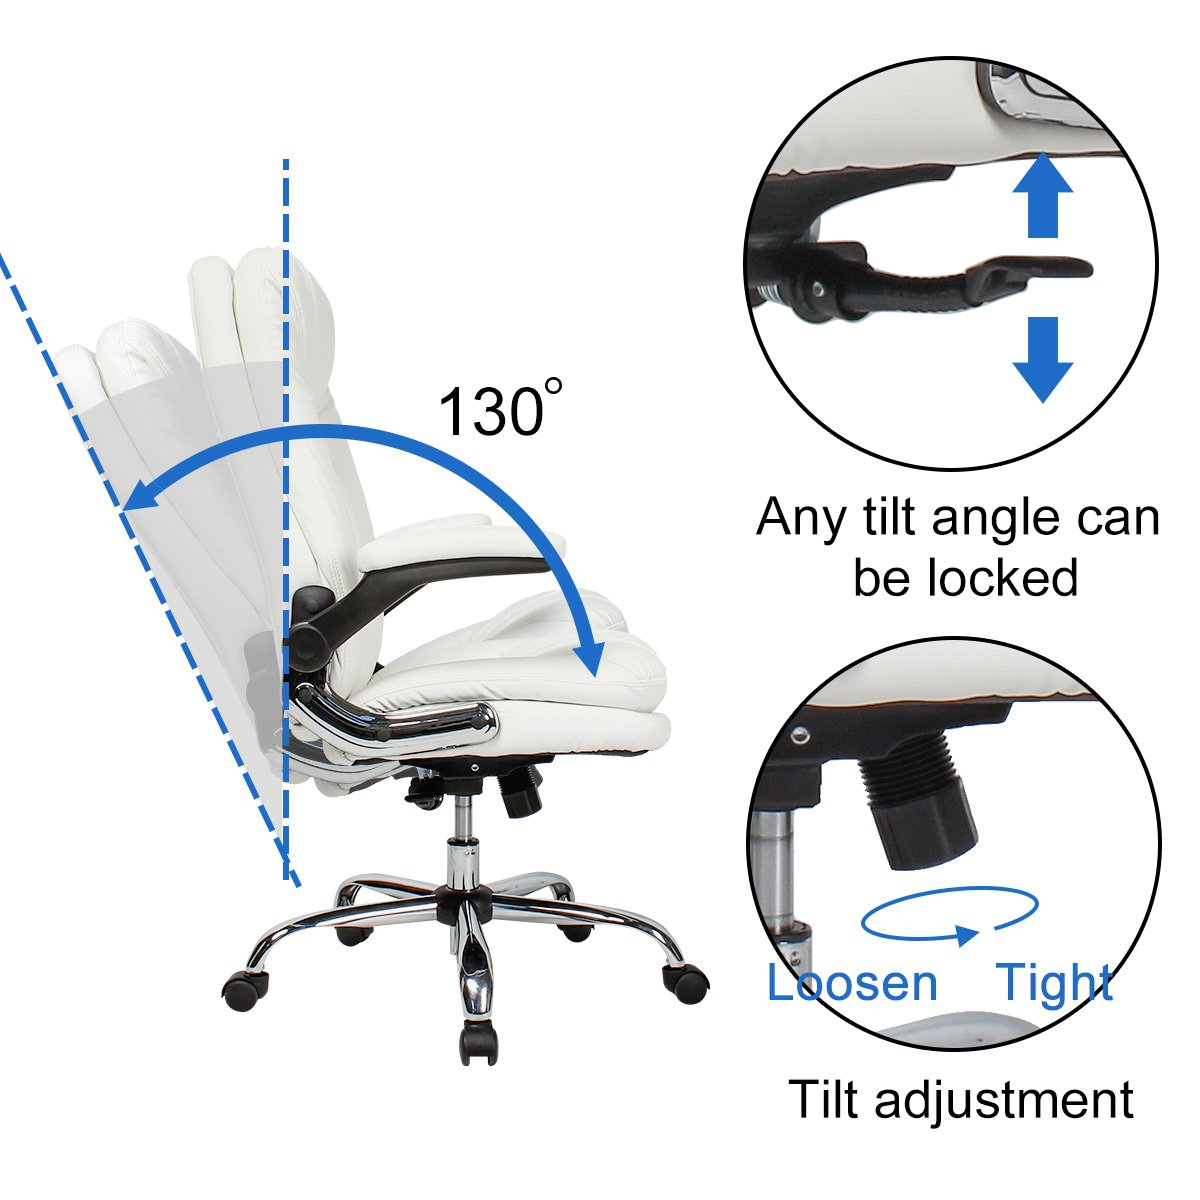 YAMASORO Ergonomic Office Chair with Flip-Up Arms and Comfy Headrest PU Leather High-Back Computer Desk Chair Big and Tall Capacity 330lbs White by YAMASORO (Image #10)